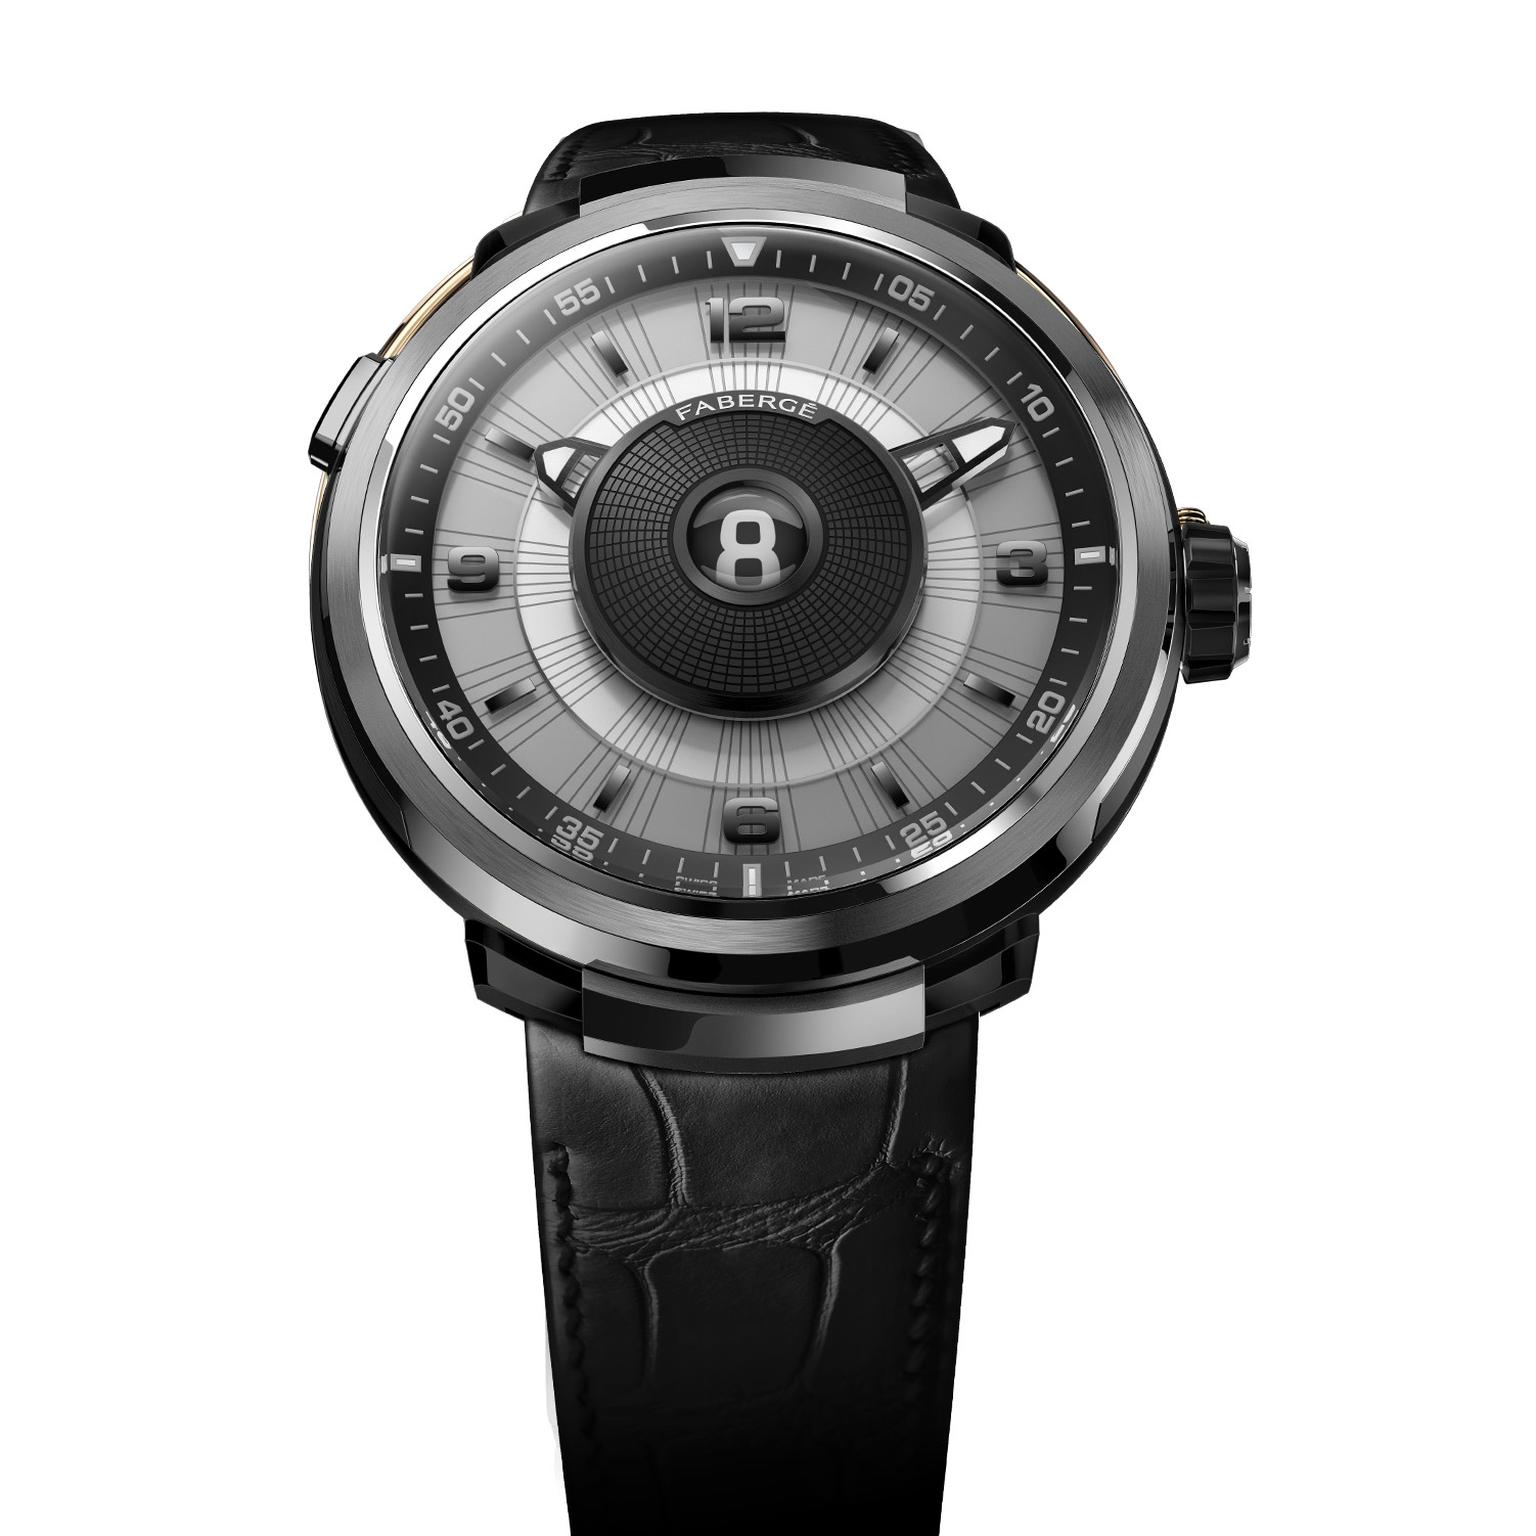 Fabergé Visionnaire DTZ watch in white gold